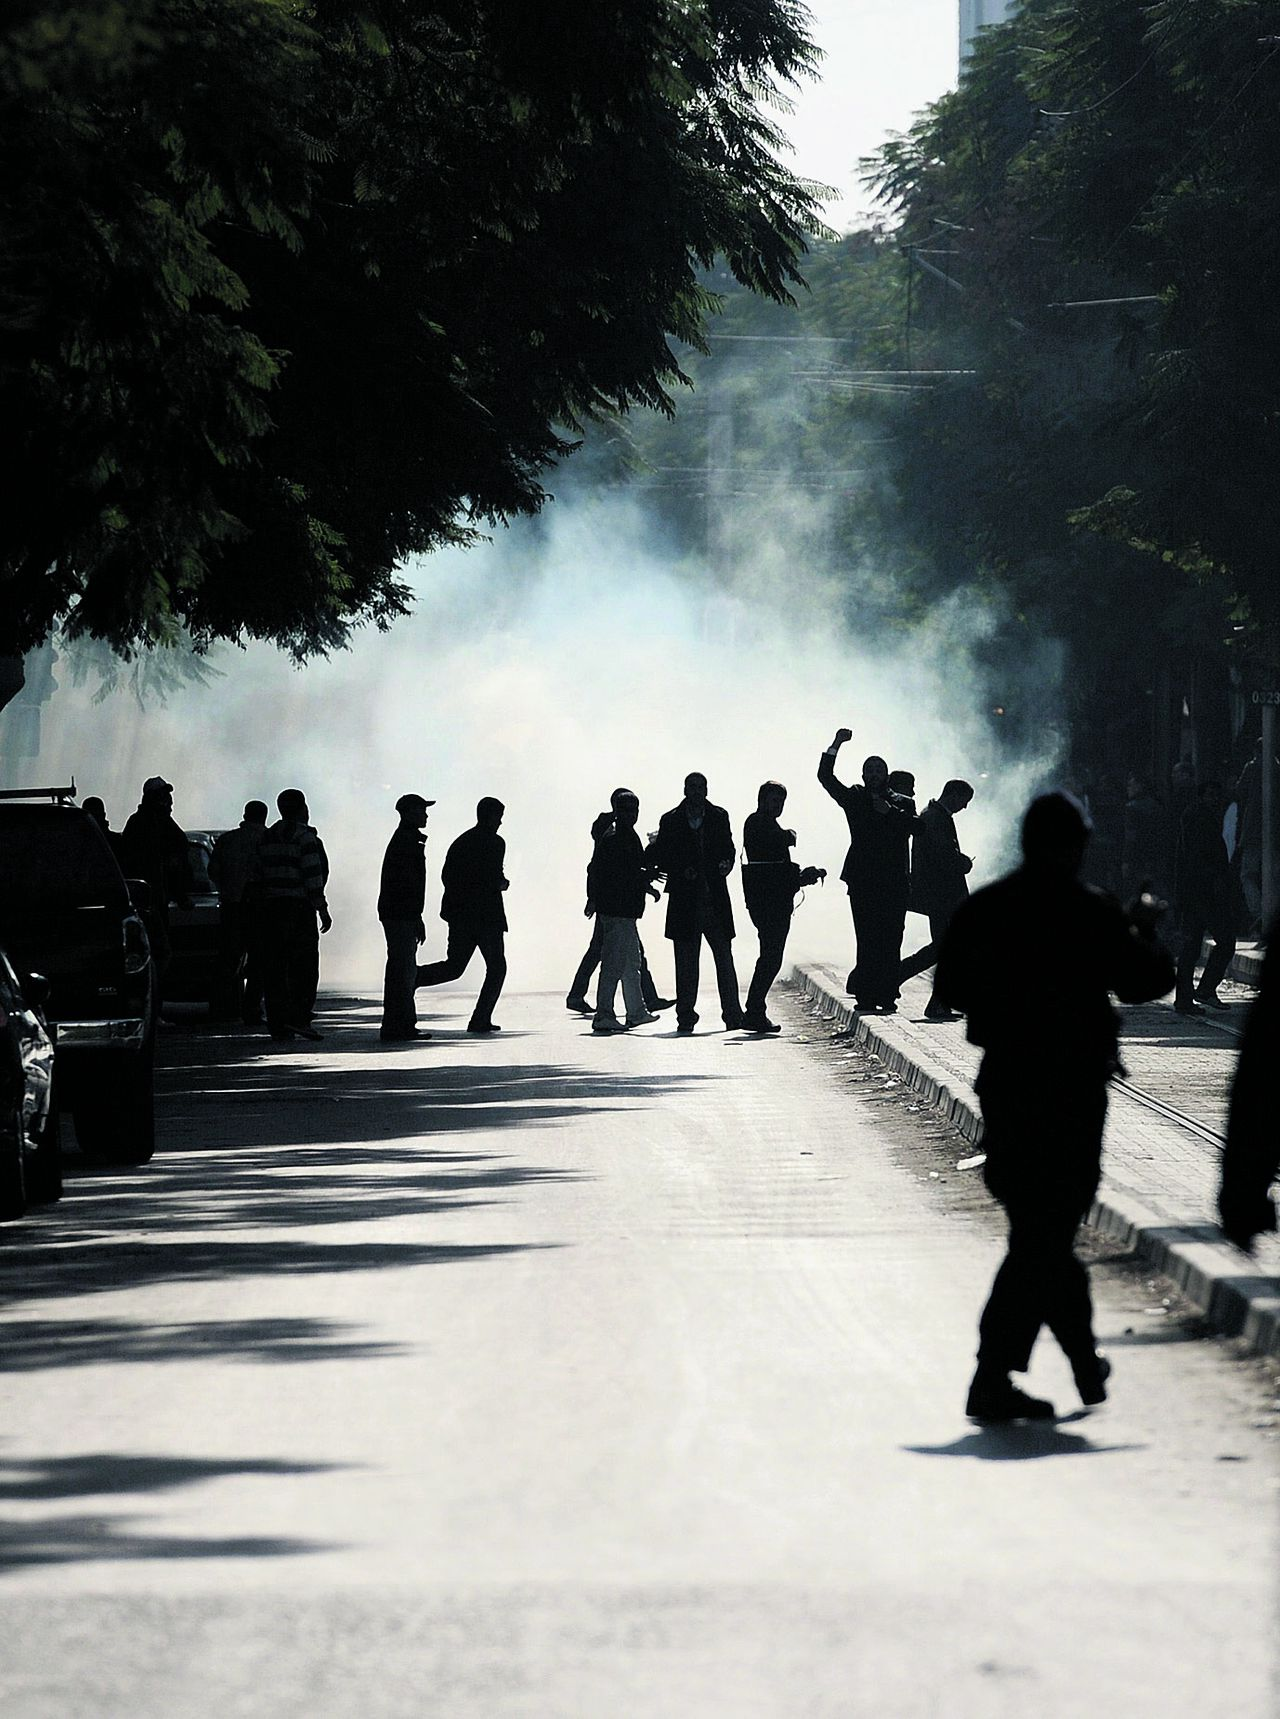 De politie in Tunis leverde gisteren zware gevechten met de betogers en gebruikte daarbij traangas. Foto's AFP Tunisian demonstrators clash with policemen during a protest in central Tunis on January 17, 2011. Tunisian protesters called for the abolition of ousted president Zine El Abidine Ben Ali's ruling party on January 17 amid a chaotic power vacuum as politicians prepared a government of national unity. Hundreds of people rallied in Tunis and there were similar protests in Sidi Bouzid and Regueb in central Tunisia -- two towns at the heart of the movement that forced Ben Ali to resign and flee on Friday after 23 years in power. AFP PHOTO / FRED DUFOUR